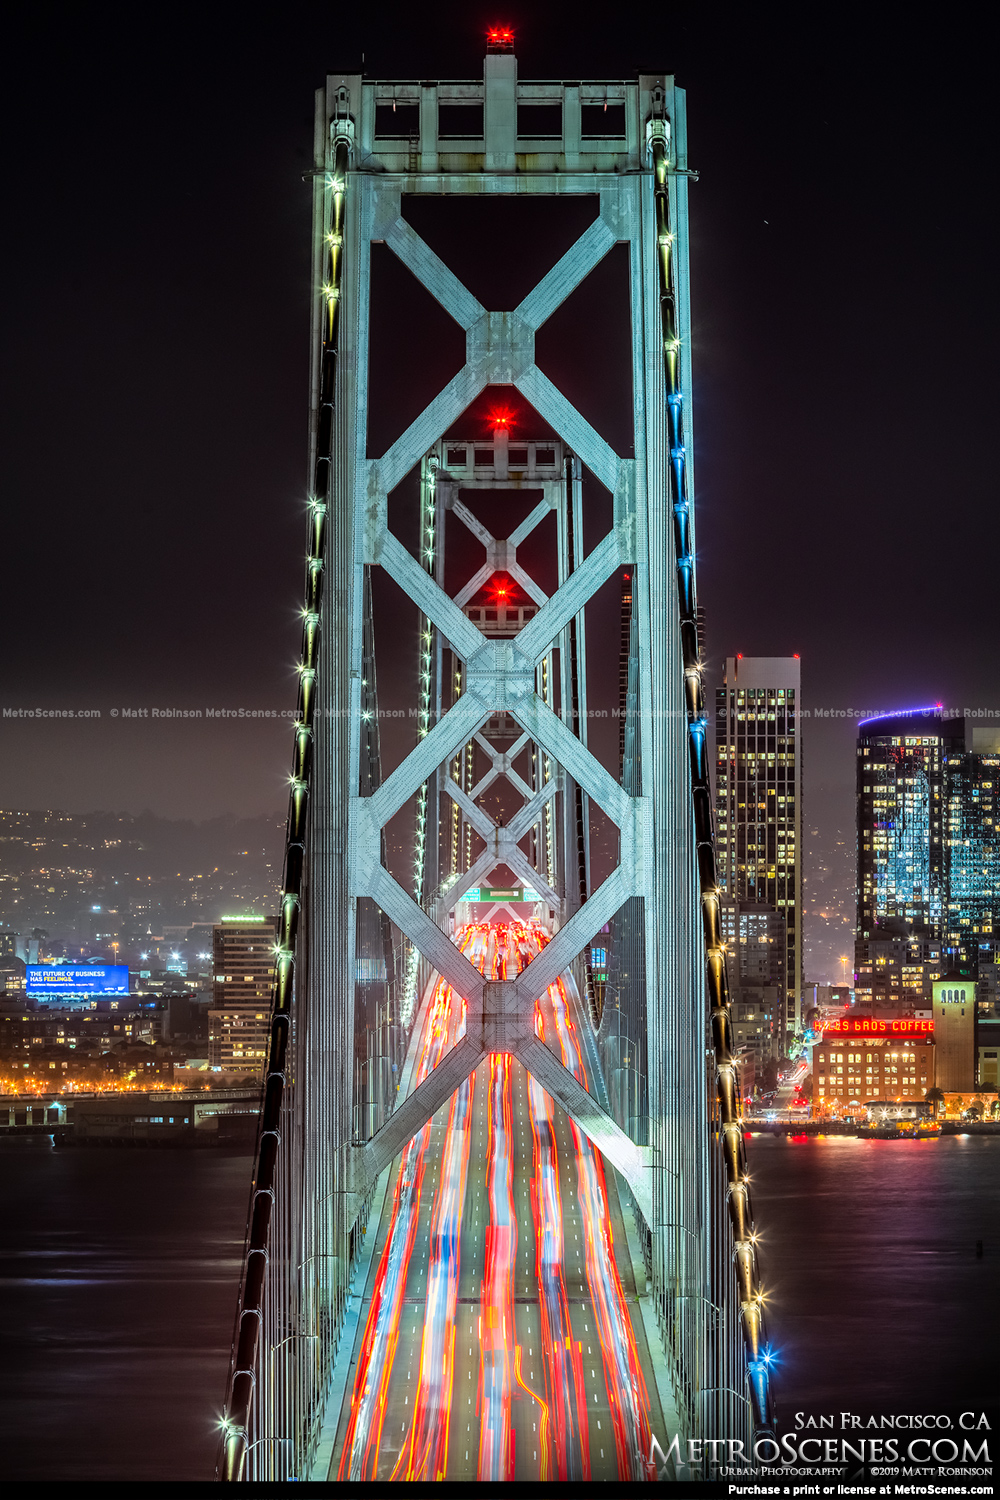 Looking down the Bay Bridge at night from Yerba Buena Island